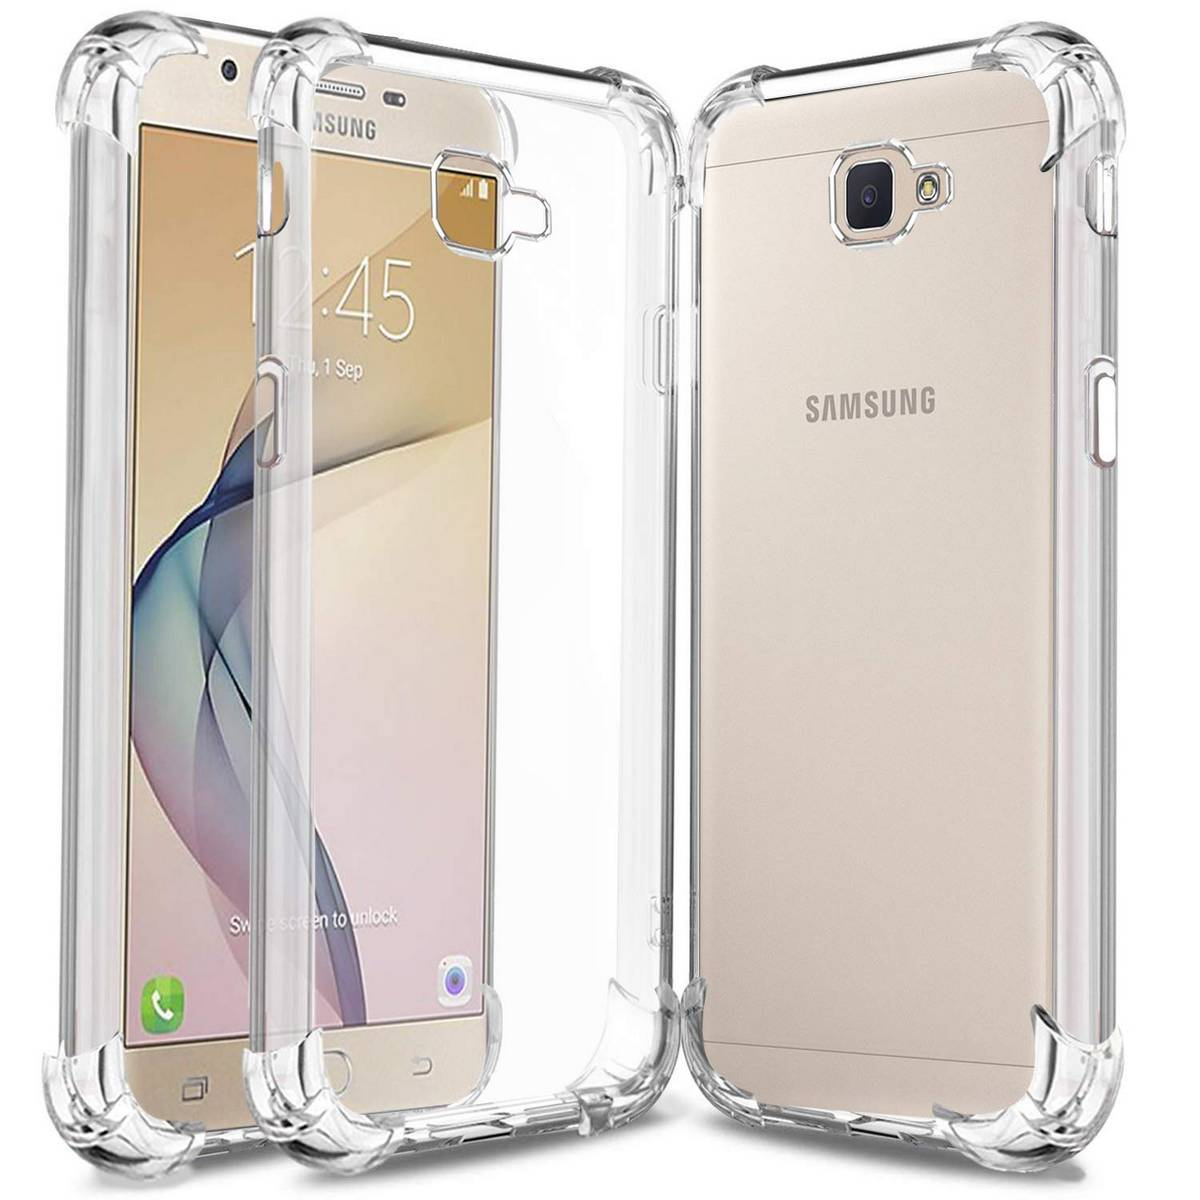 Samsung Galaxy J7 Prime Airbag Case Anti Shock and Anti-Scratch Resistant Clear View Transparent Silicone Back Cover